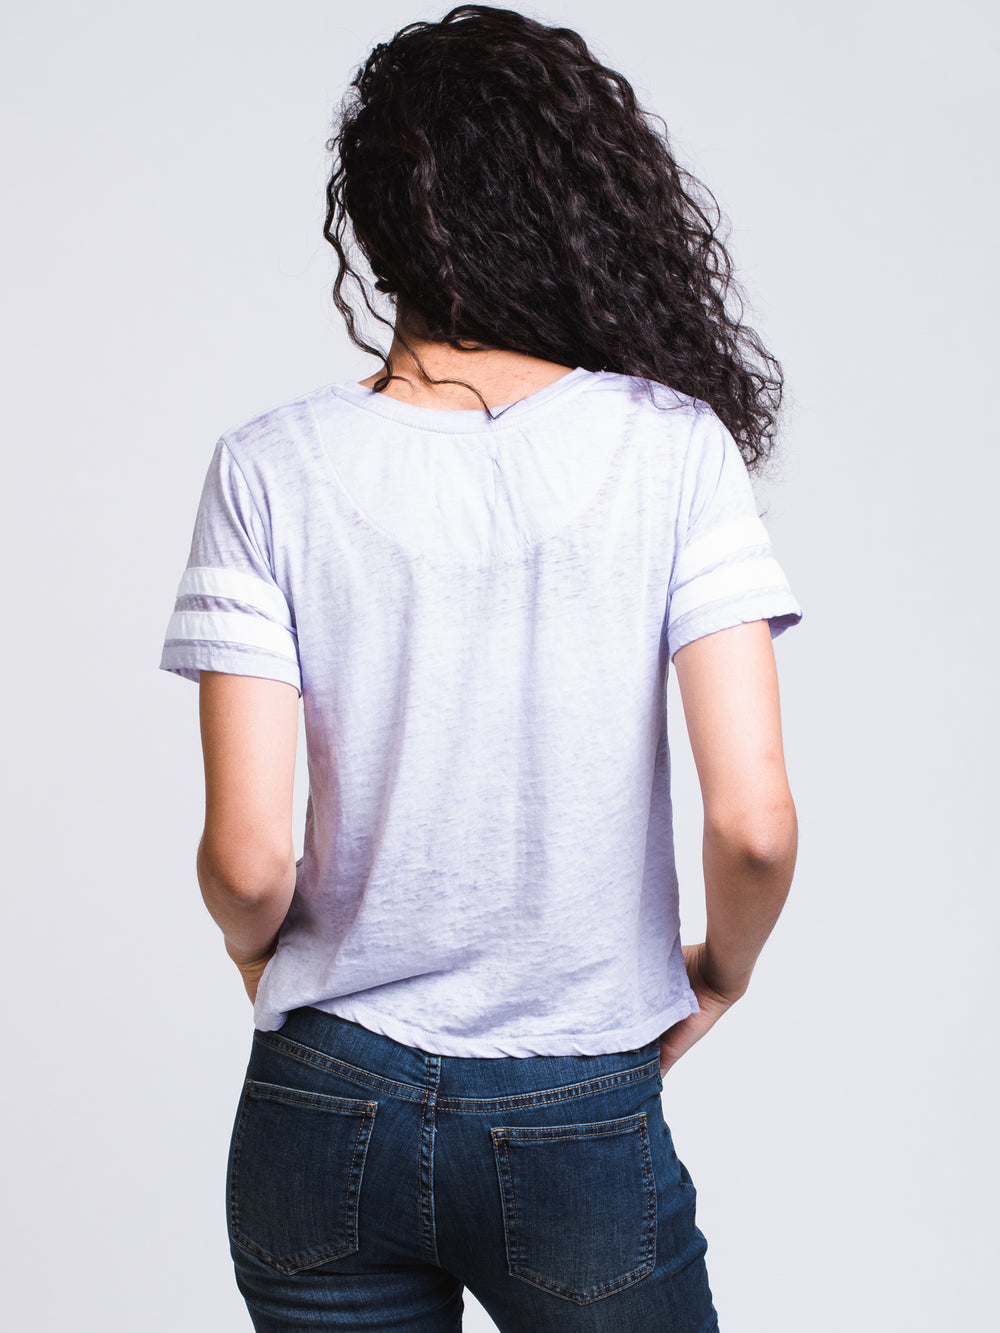 WOMENS MILA BURNOUT TEE - CLEARANCE